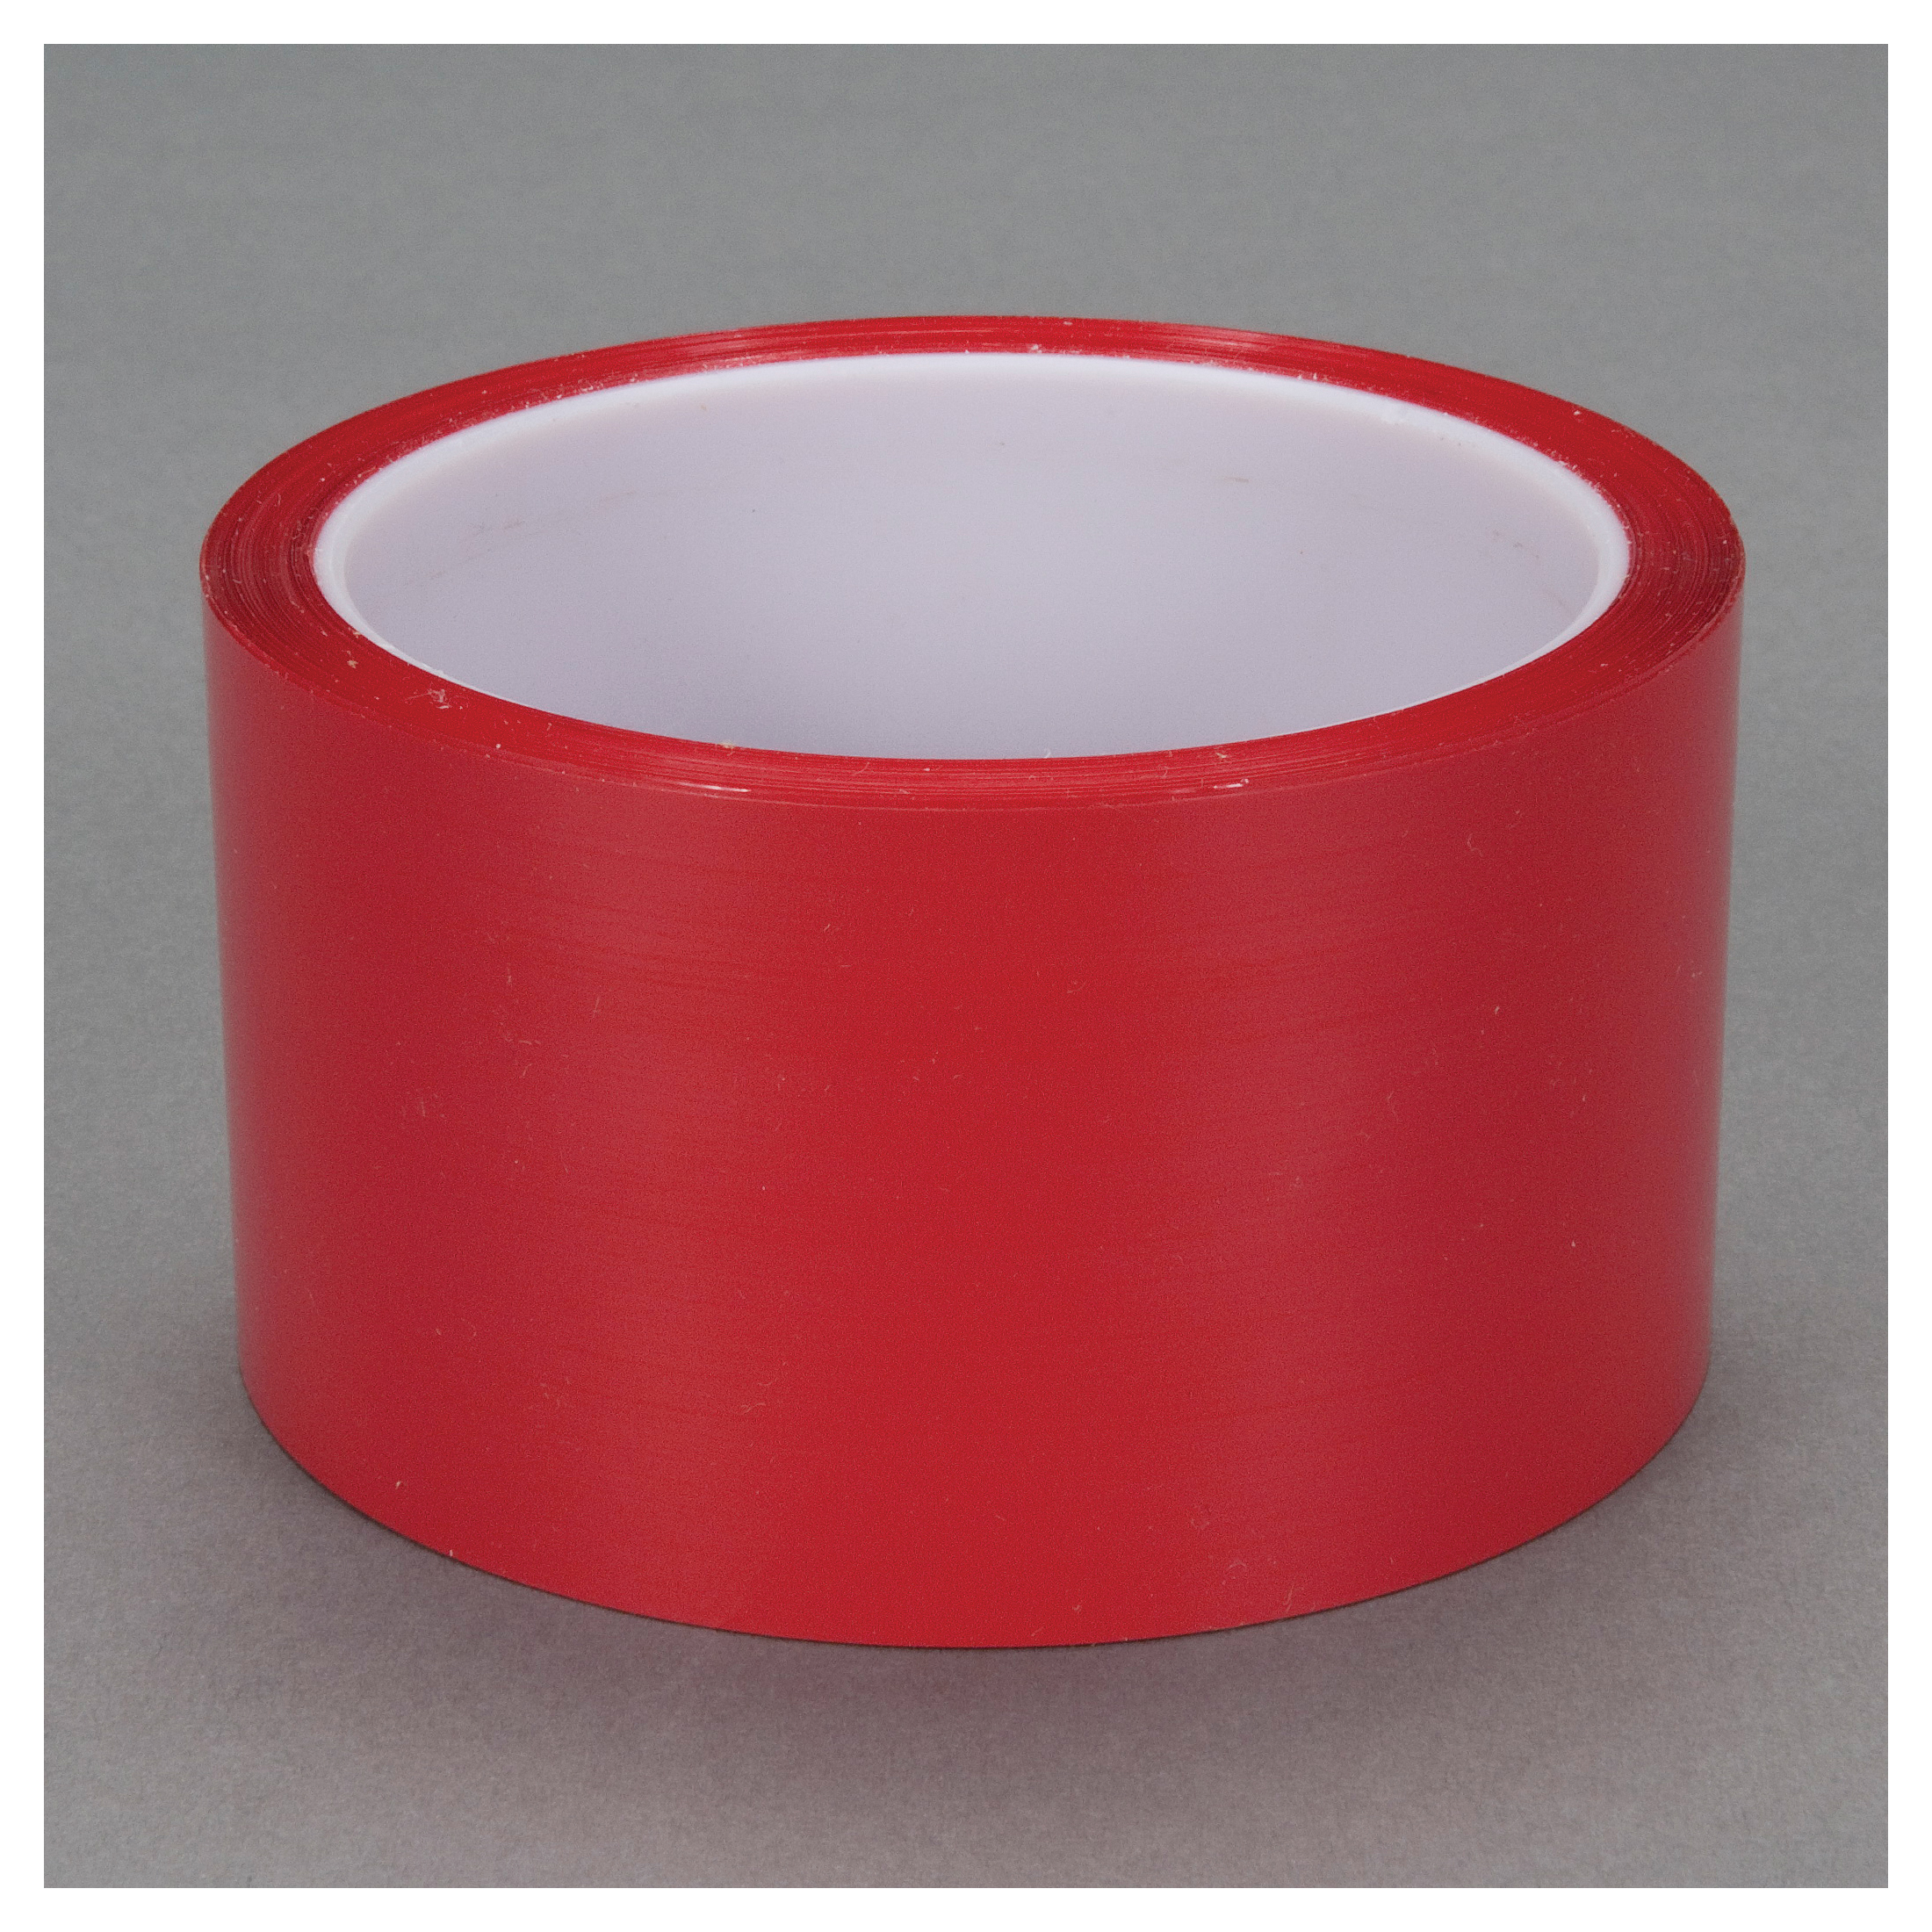 3M™ 021200-04347 Film Tape, 72 yd L x 2 in W, 1.9 mil THK, Acrylic Adhesive, 0.9 mil Polyester Backing, Red